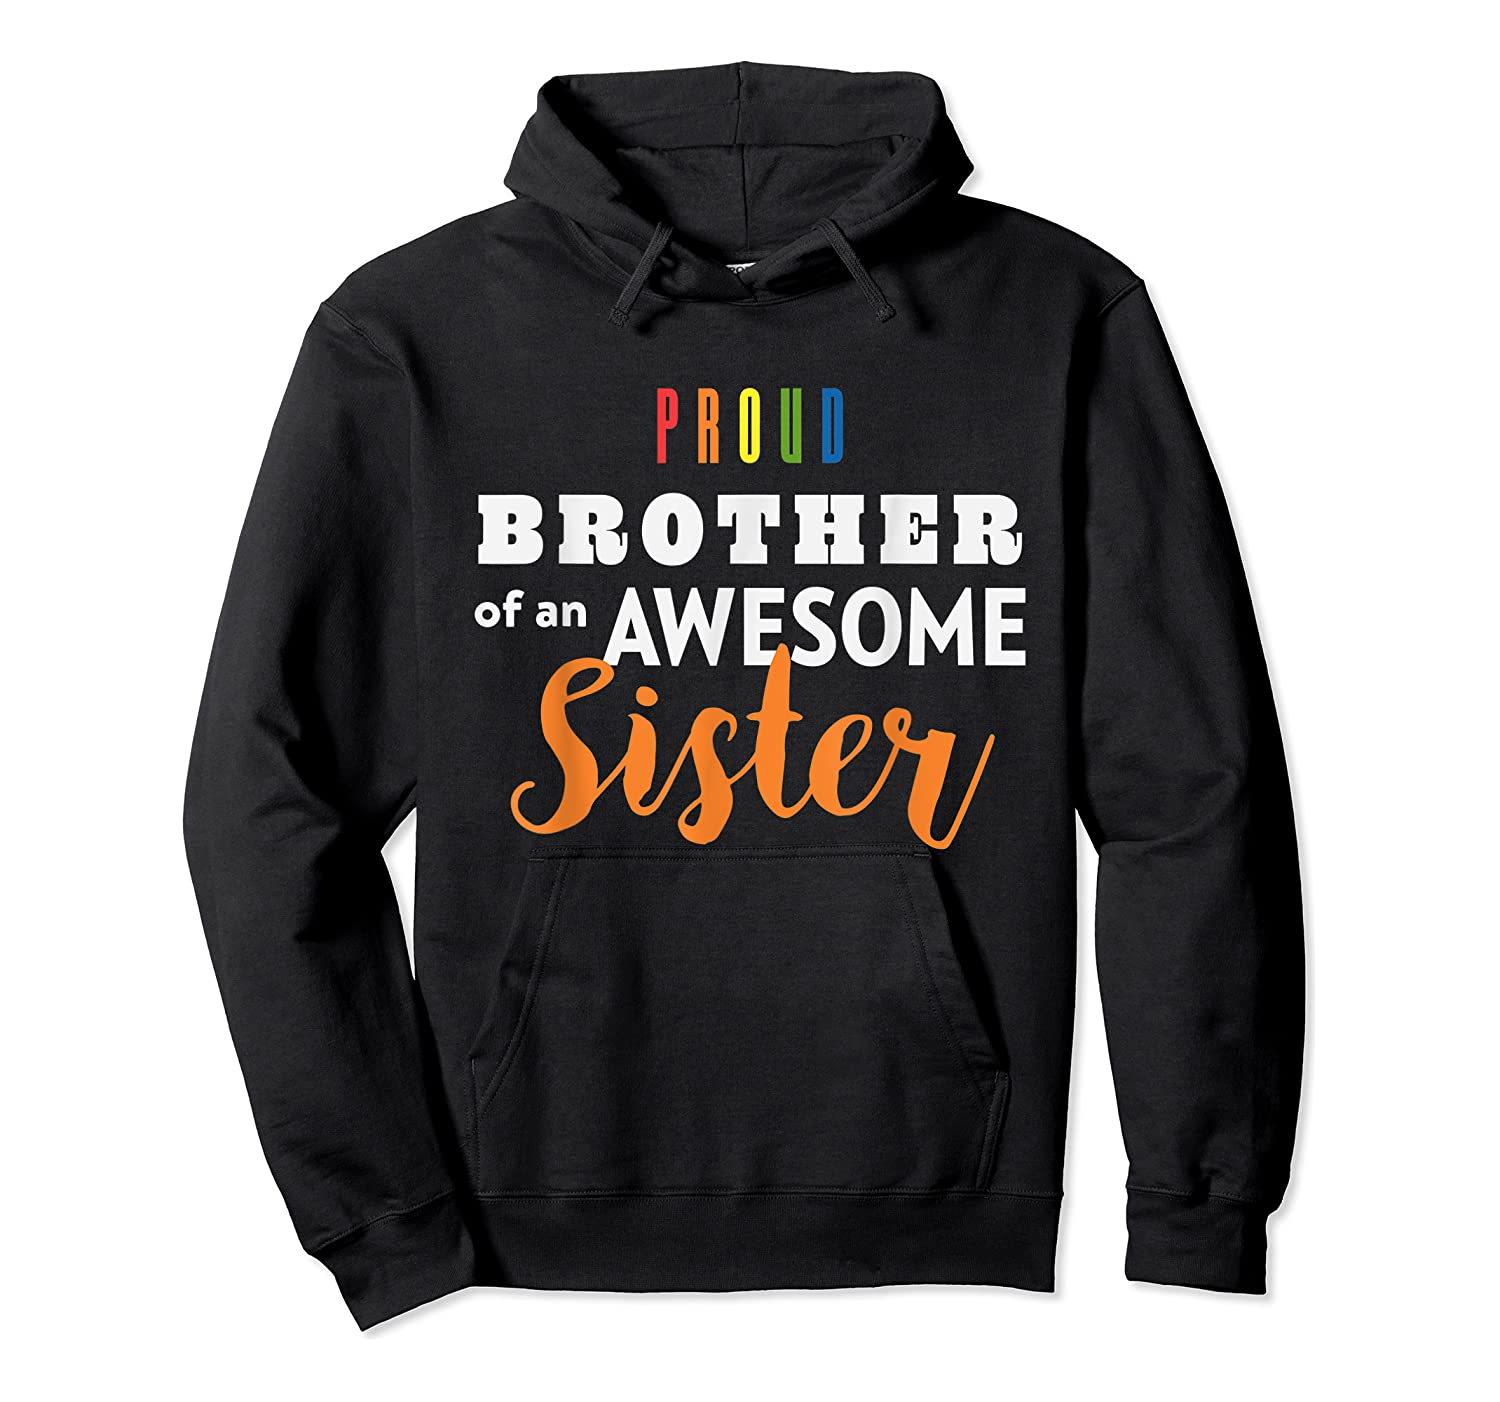 Proud Brother, Gay Pride Lgbt Shirts Unisex Pullover Hoodie